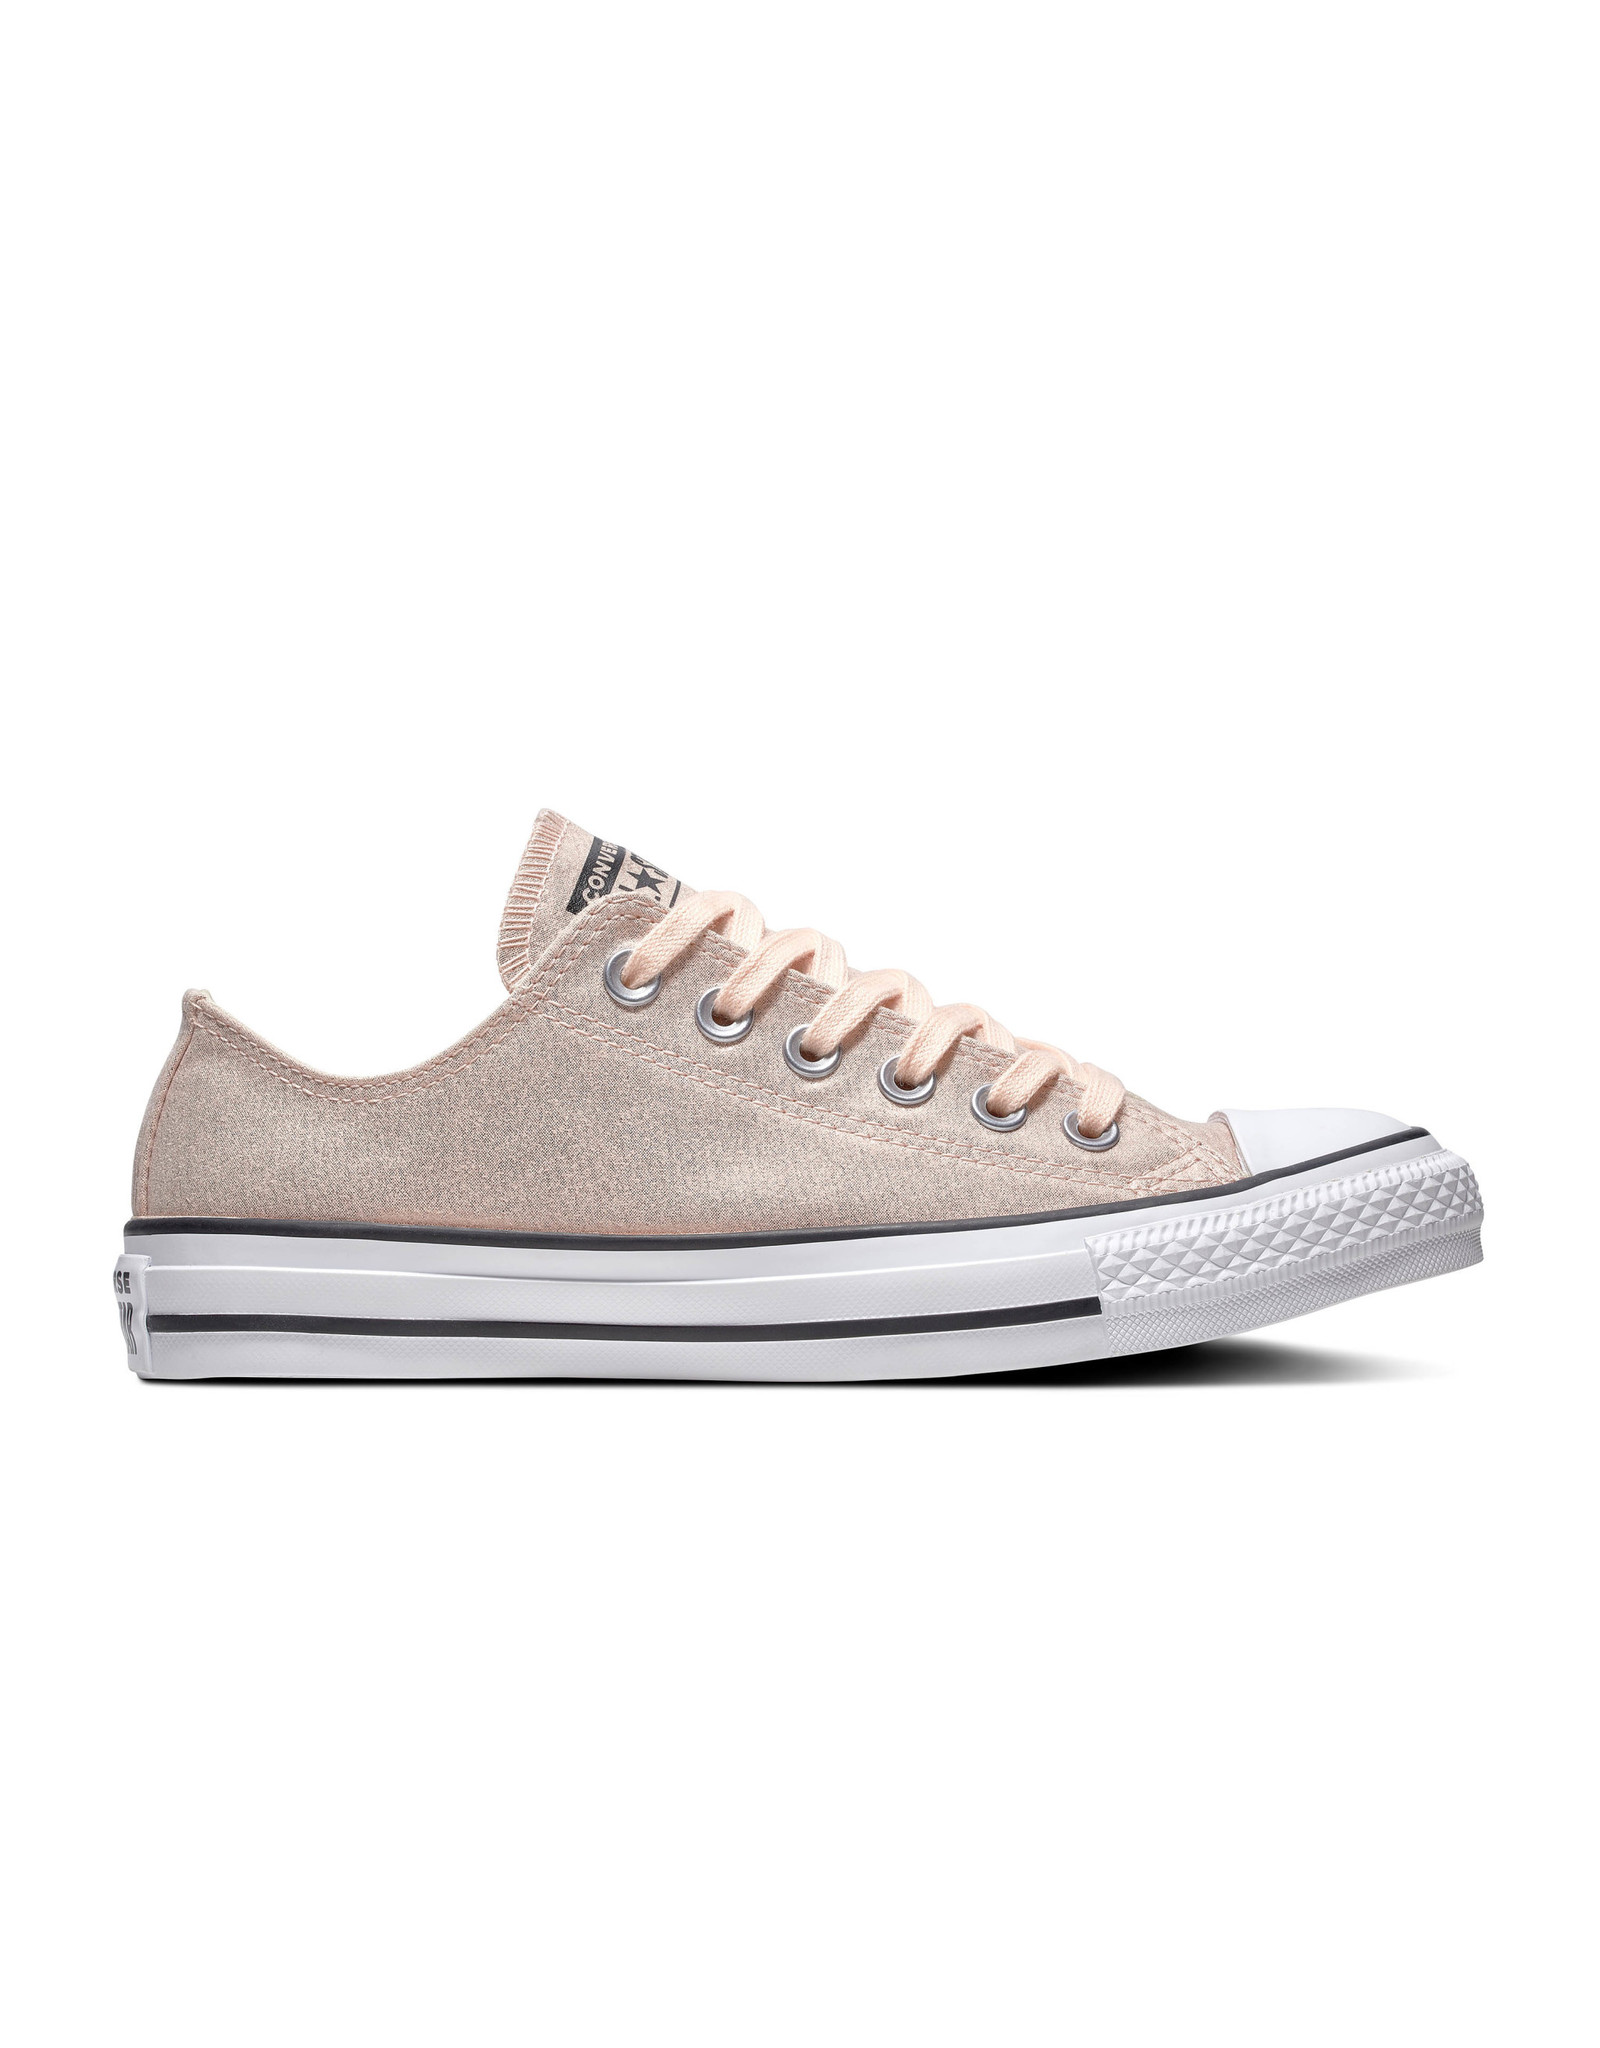 CONVERSE CHUCK TAYLOR ALL STAR OX WASHED CORAL/BLACK/WHITE C13WAS-563412C